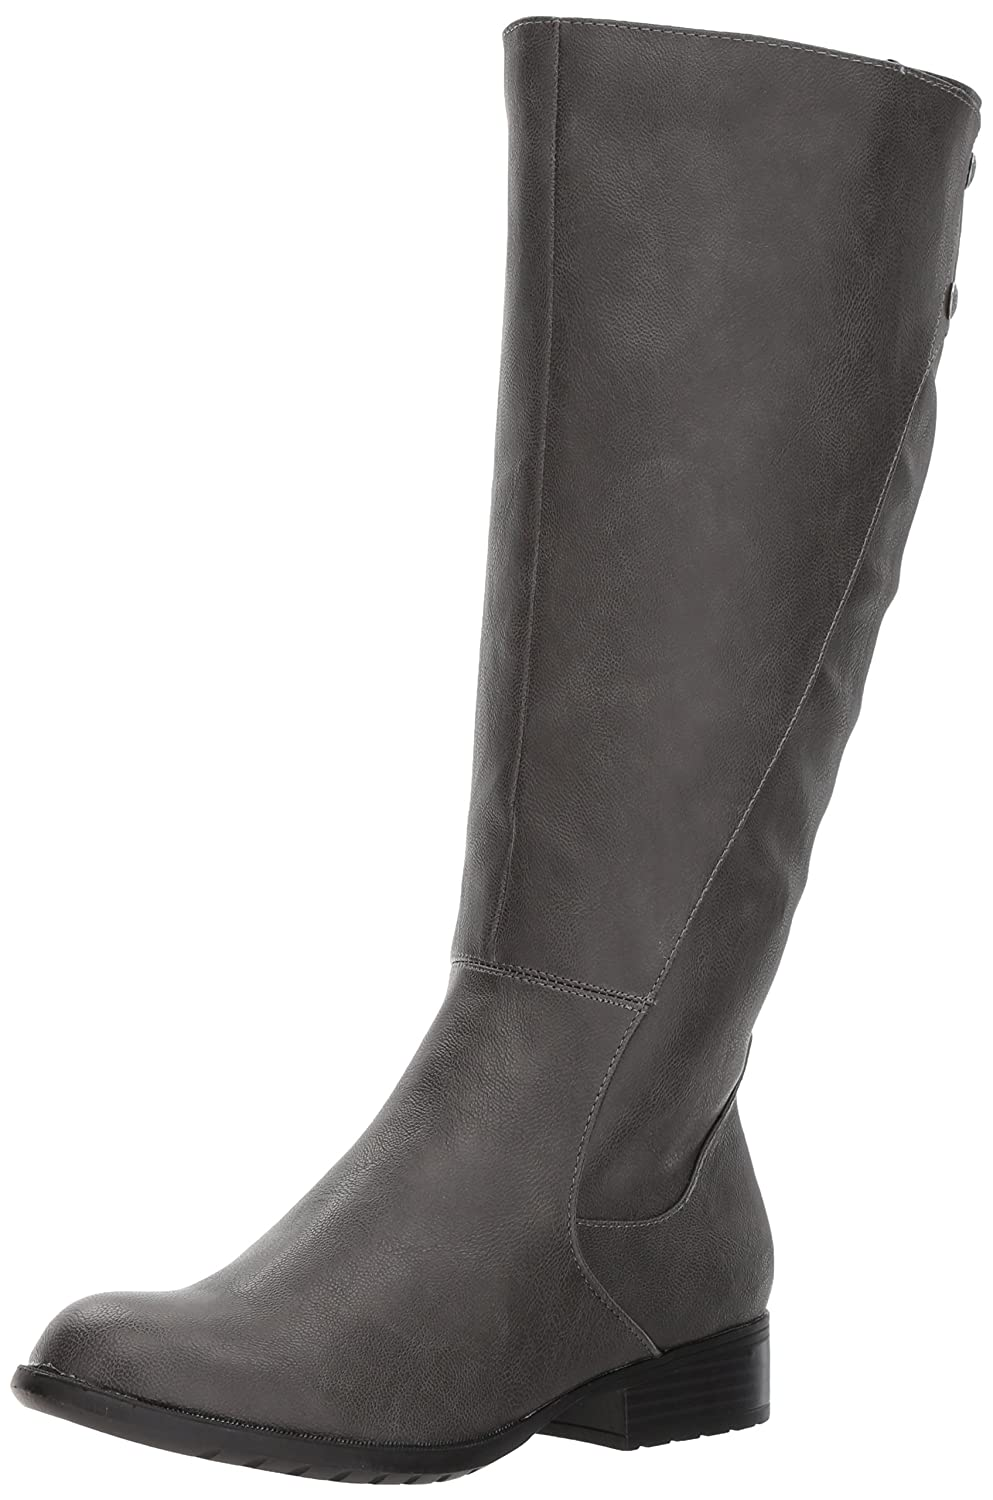 LifeStride Women's Xripley-Wc Riding Boot B07219572F 9.5 B(M) US|Dark Grey